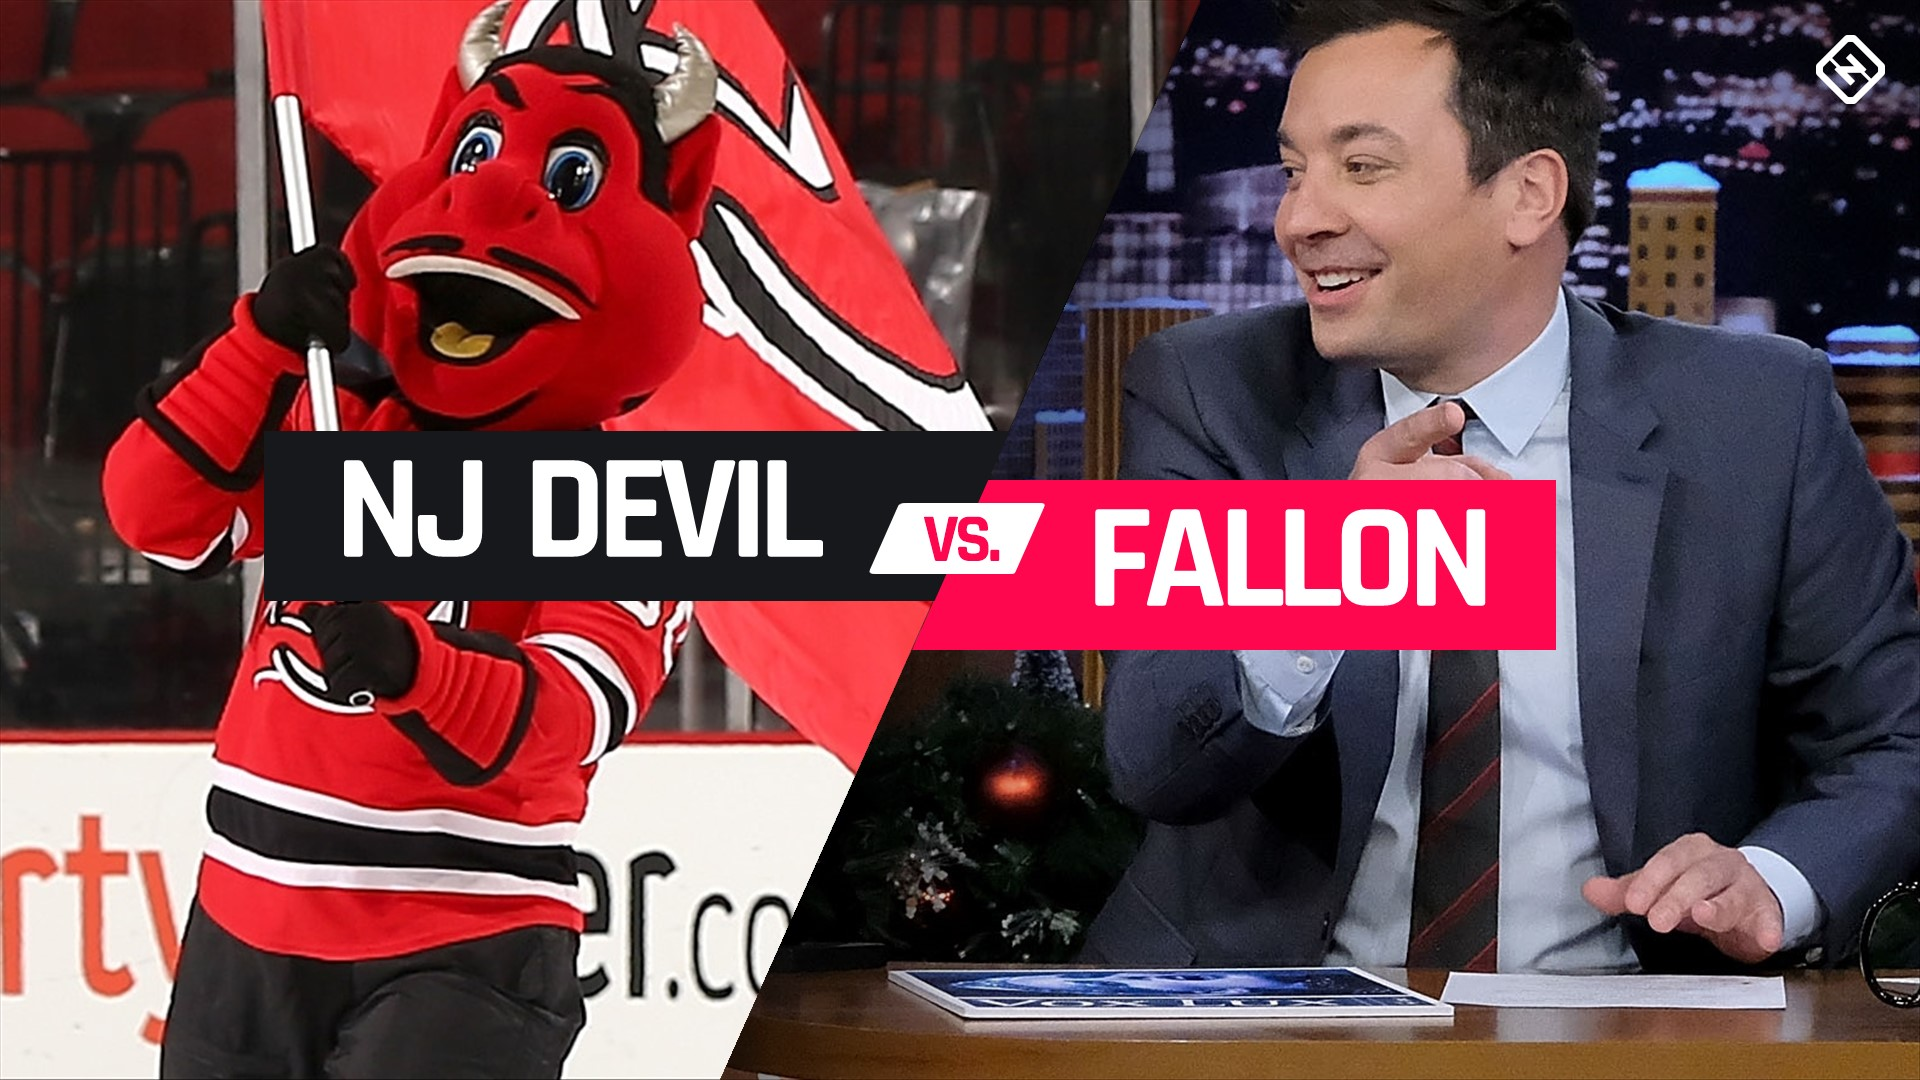 New Jersey Devils mascot, Jimmy Fallon and the bet that ended in a pie-ing